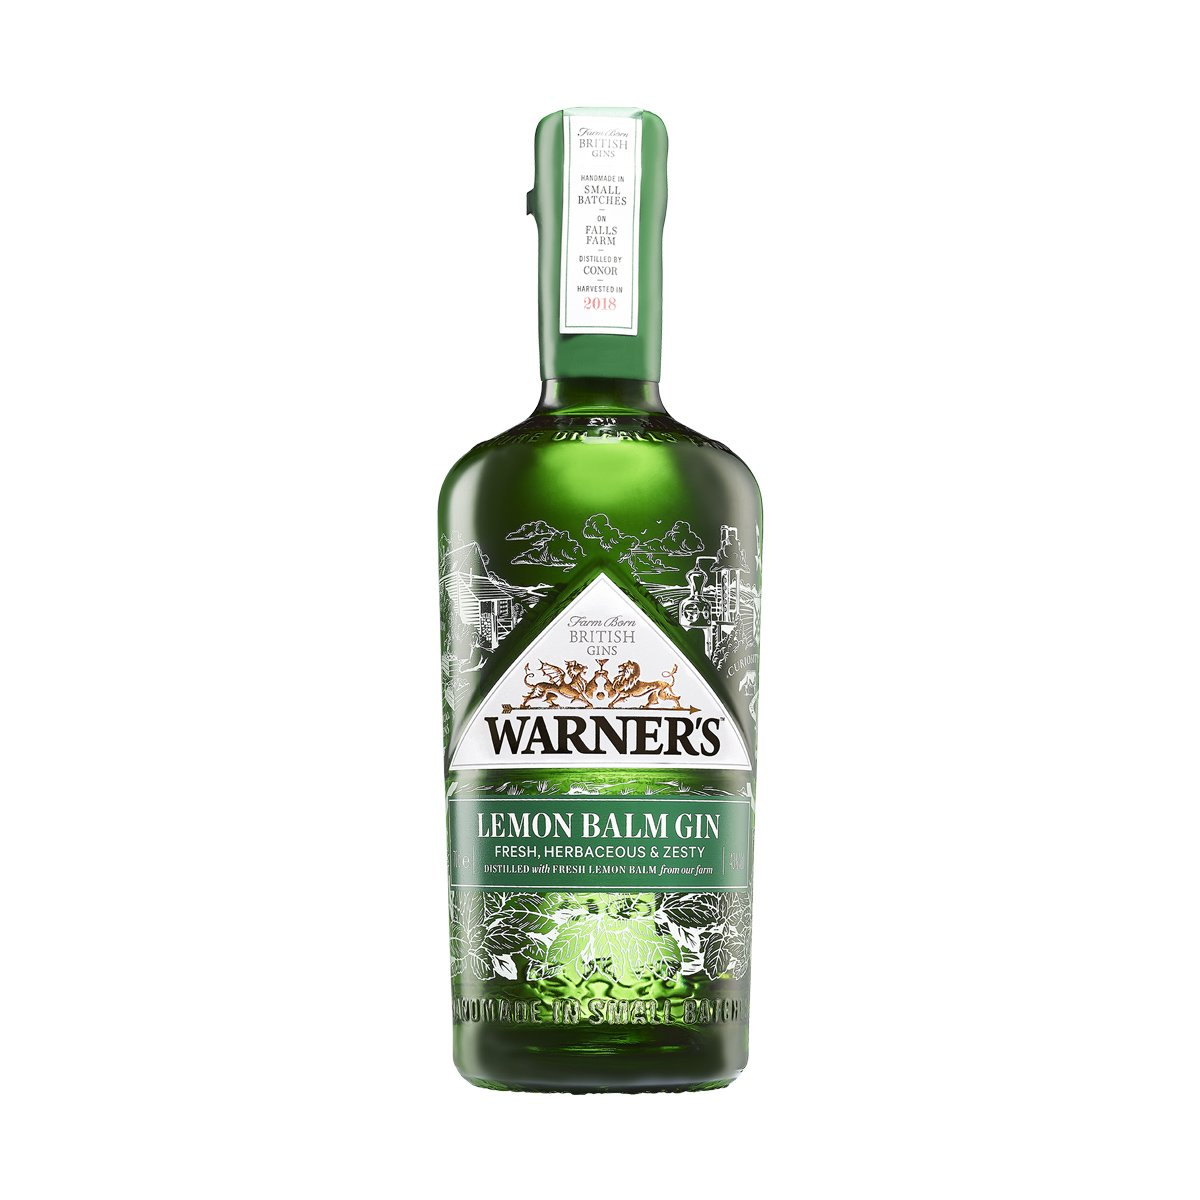 Warner's Lemon Balm Gin